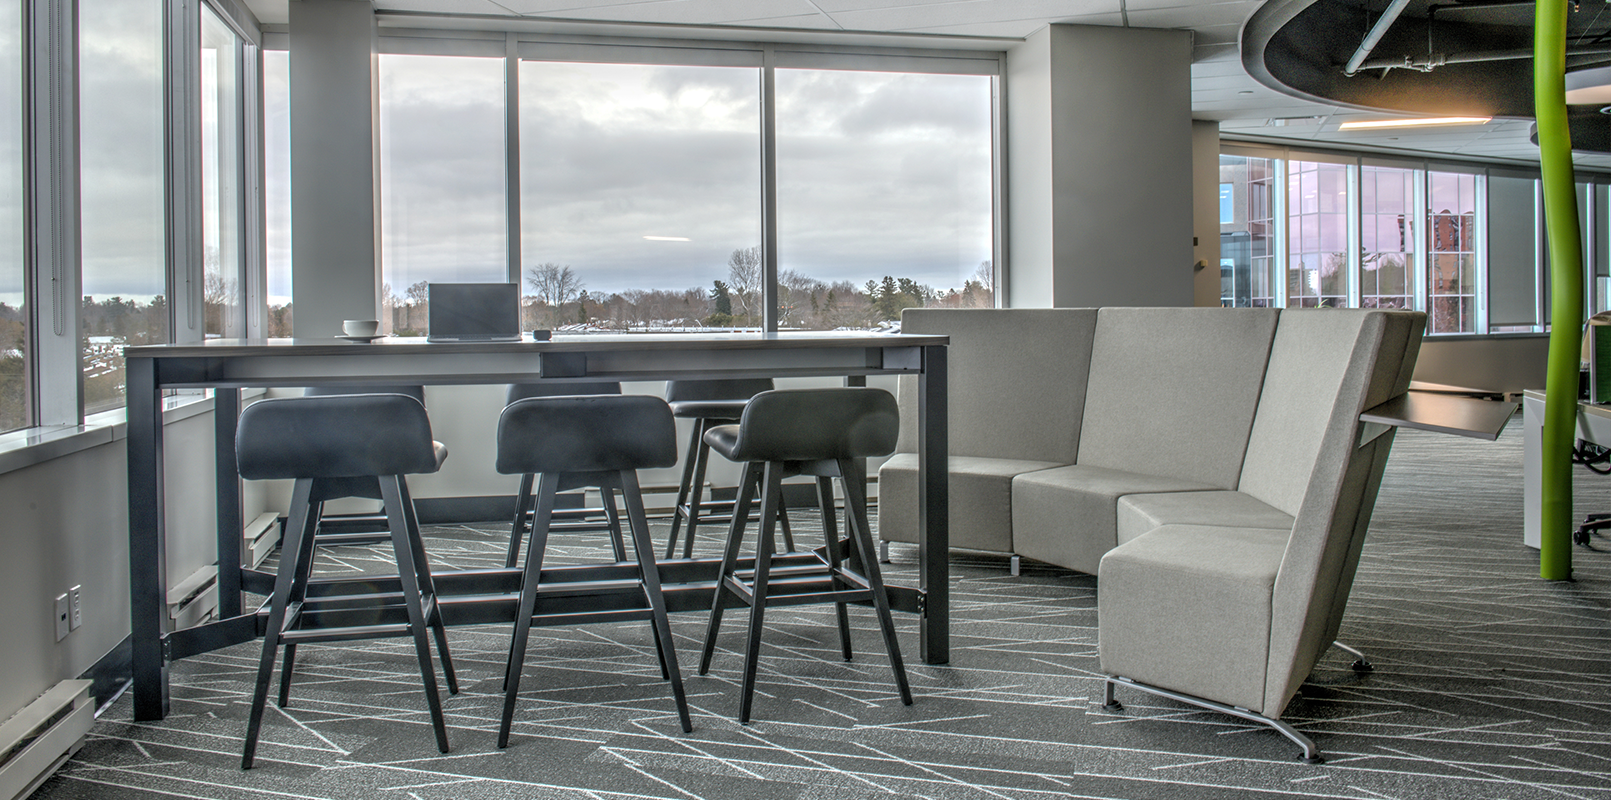 Wide view of collaboration desk and lounge sofa